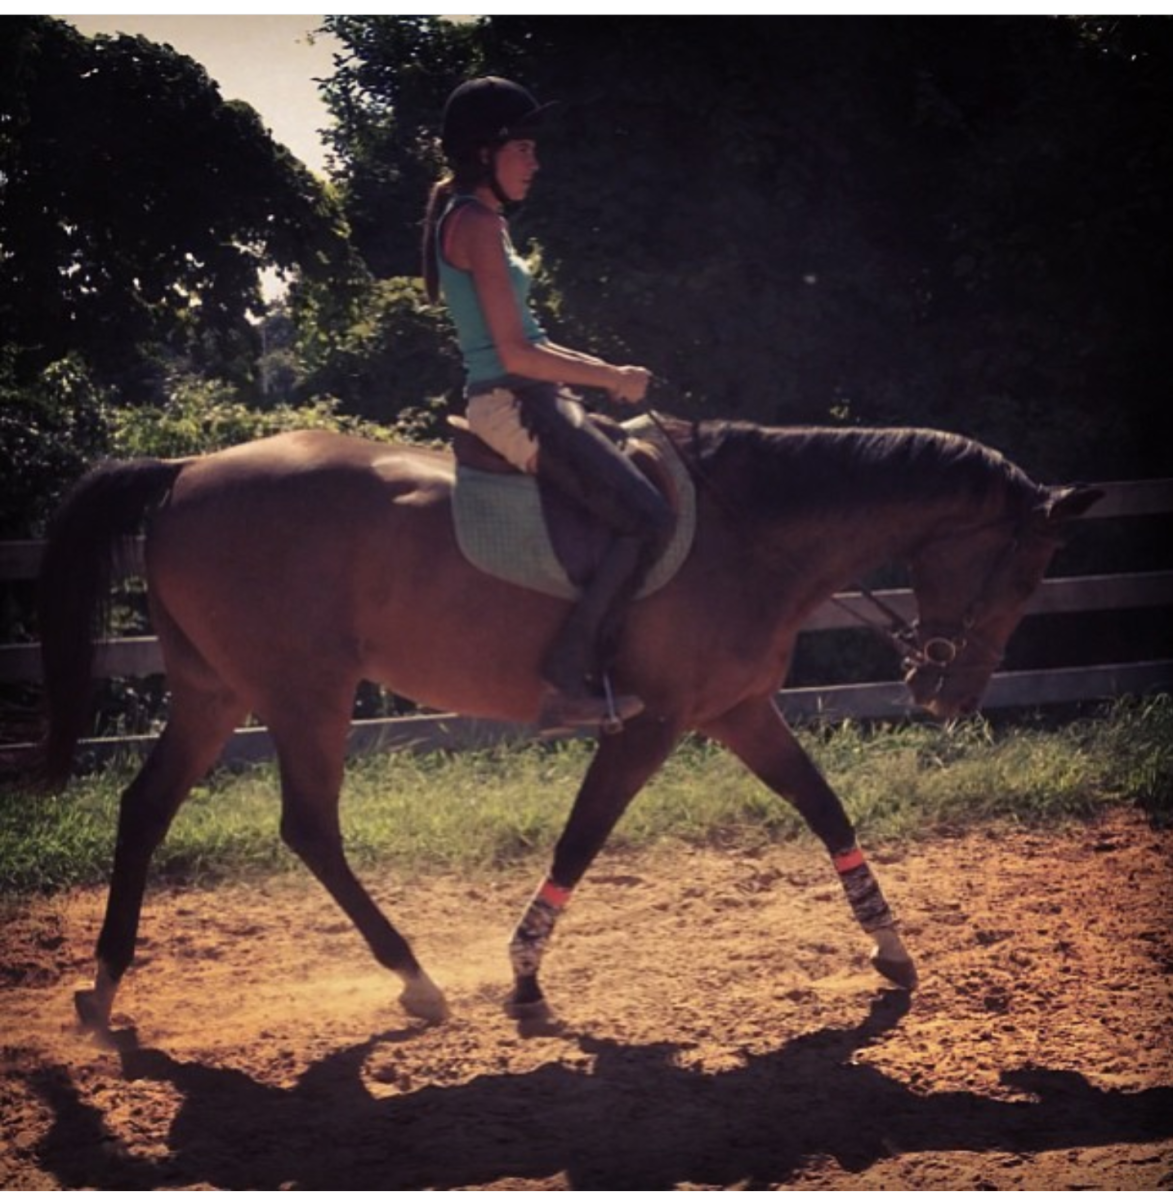 This is my main man, Kemerton, who is now retired. My story with him is the classic example of buying the horse I saw myself competing on. Luckily we had help of good trainers and lived happily everafter!